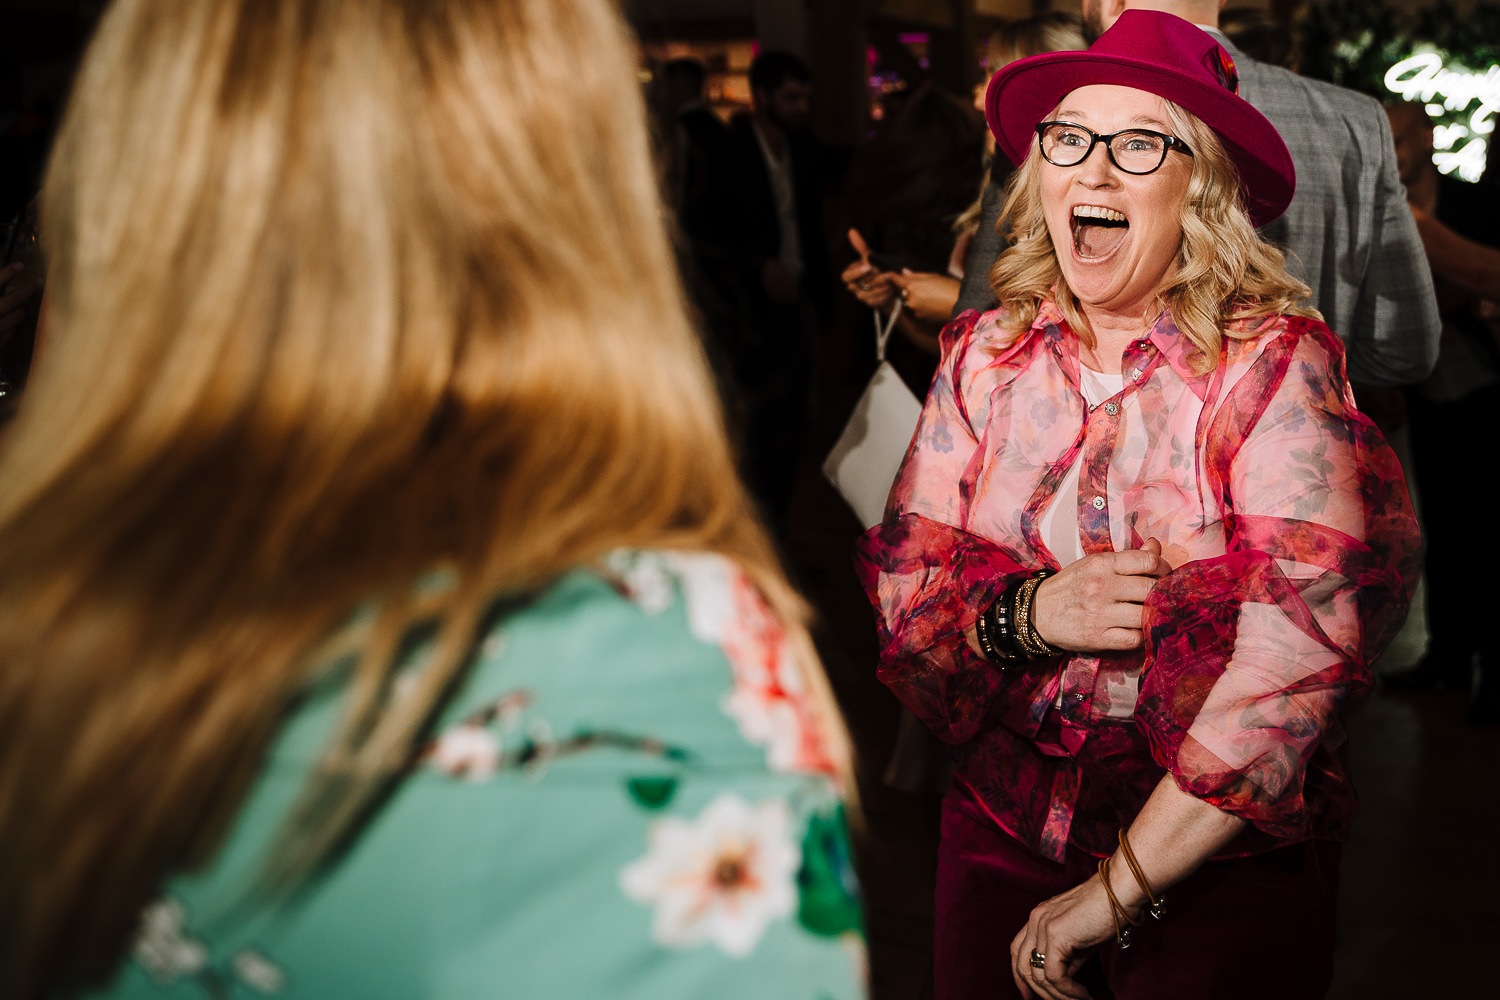 mother of bride dancing with a hat on